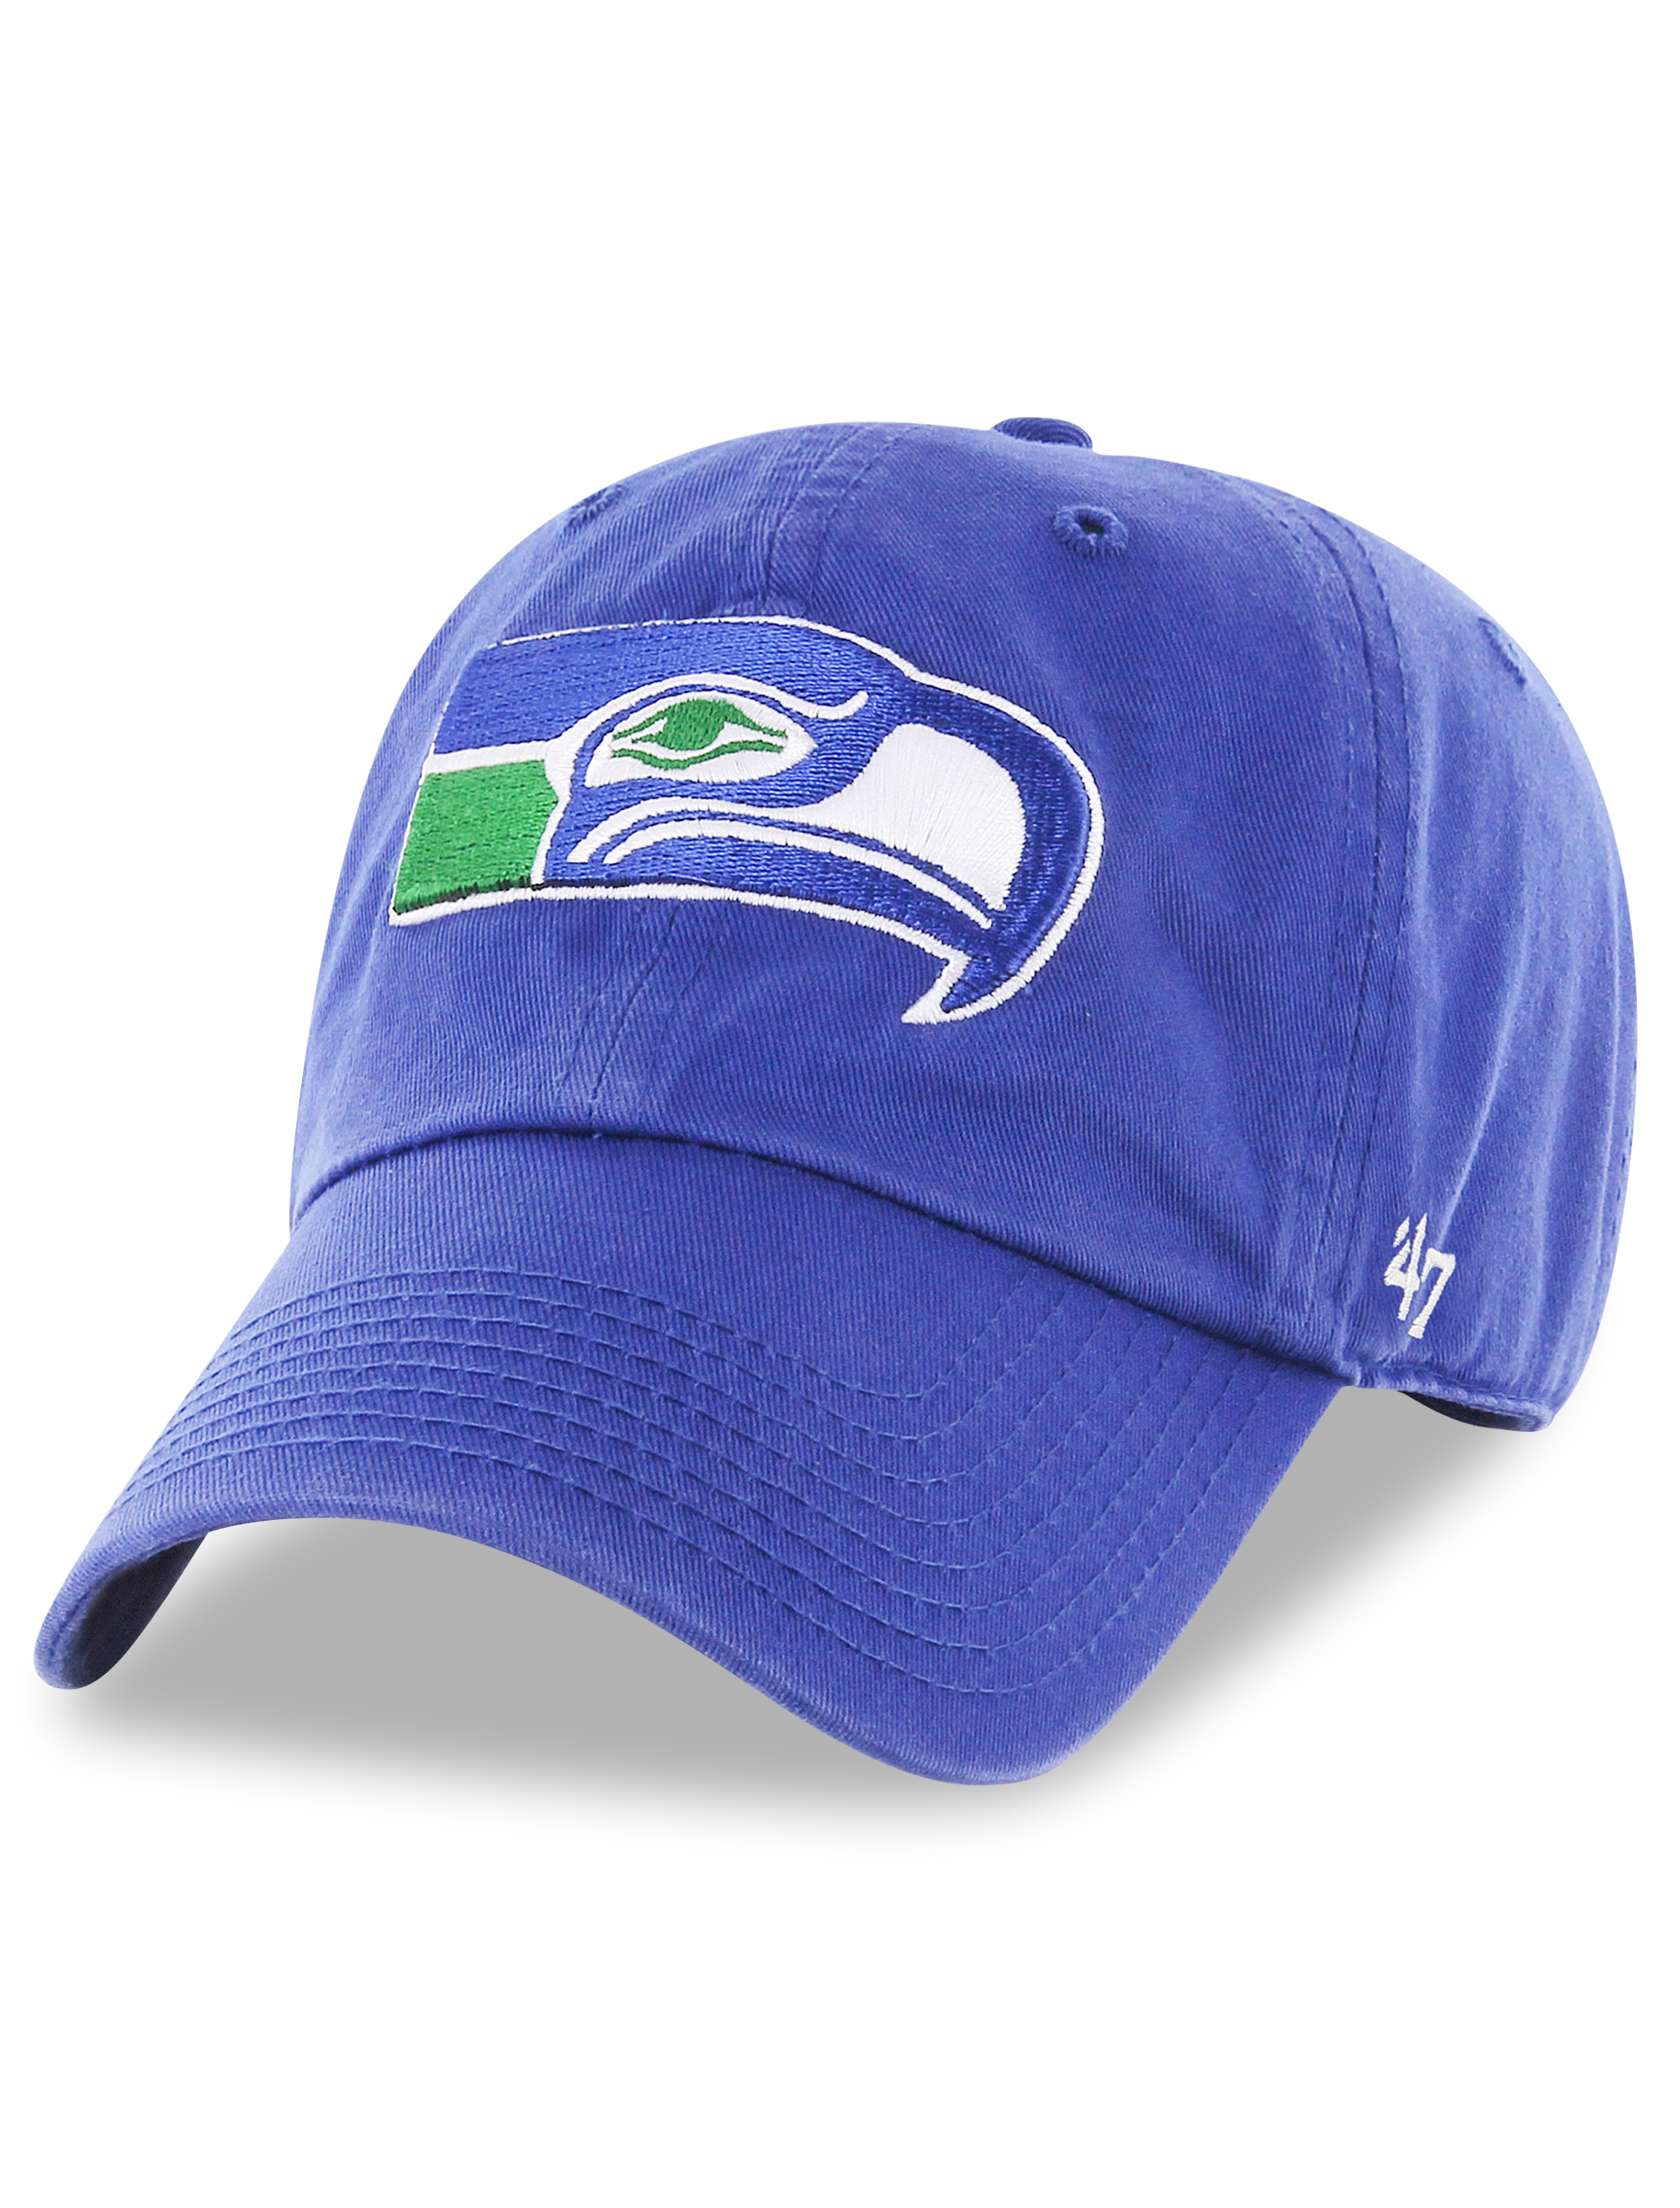 '47 Brand NFL Seattle Seahawks Retro Clean Up Baseball